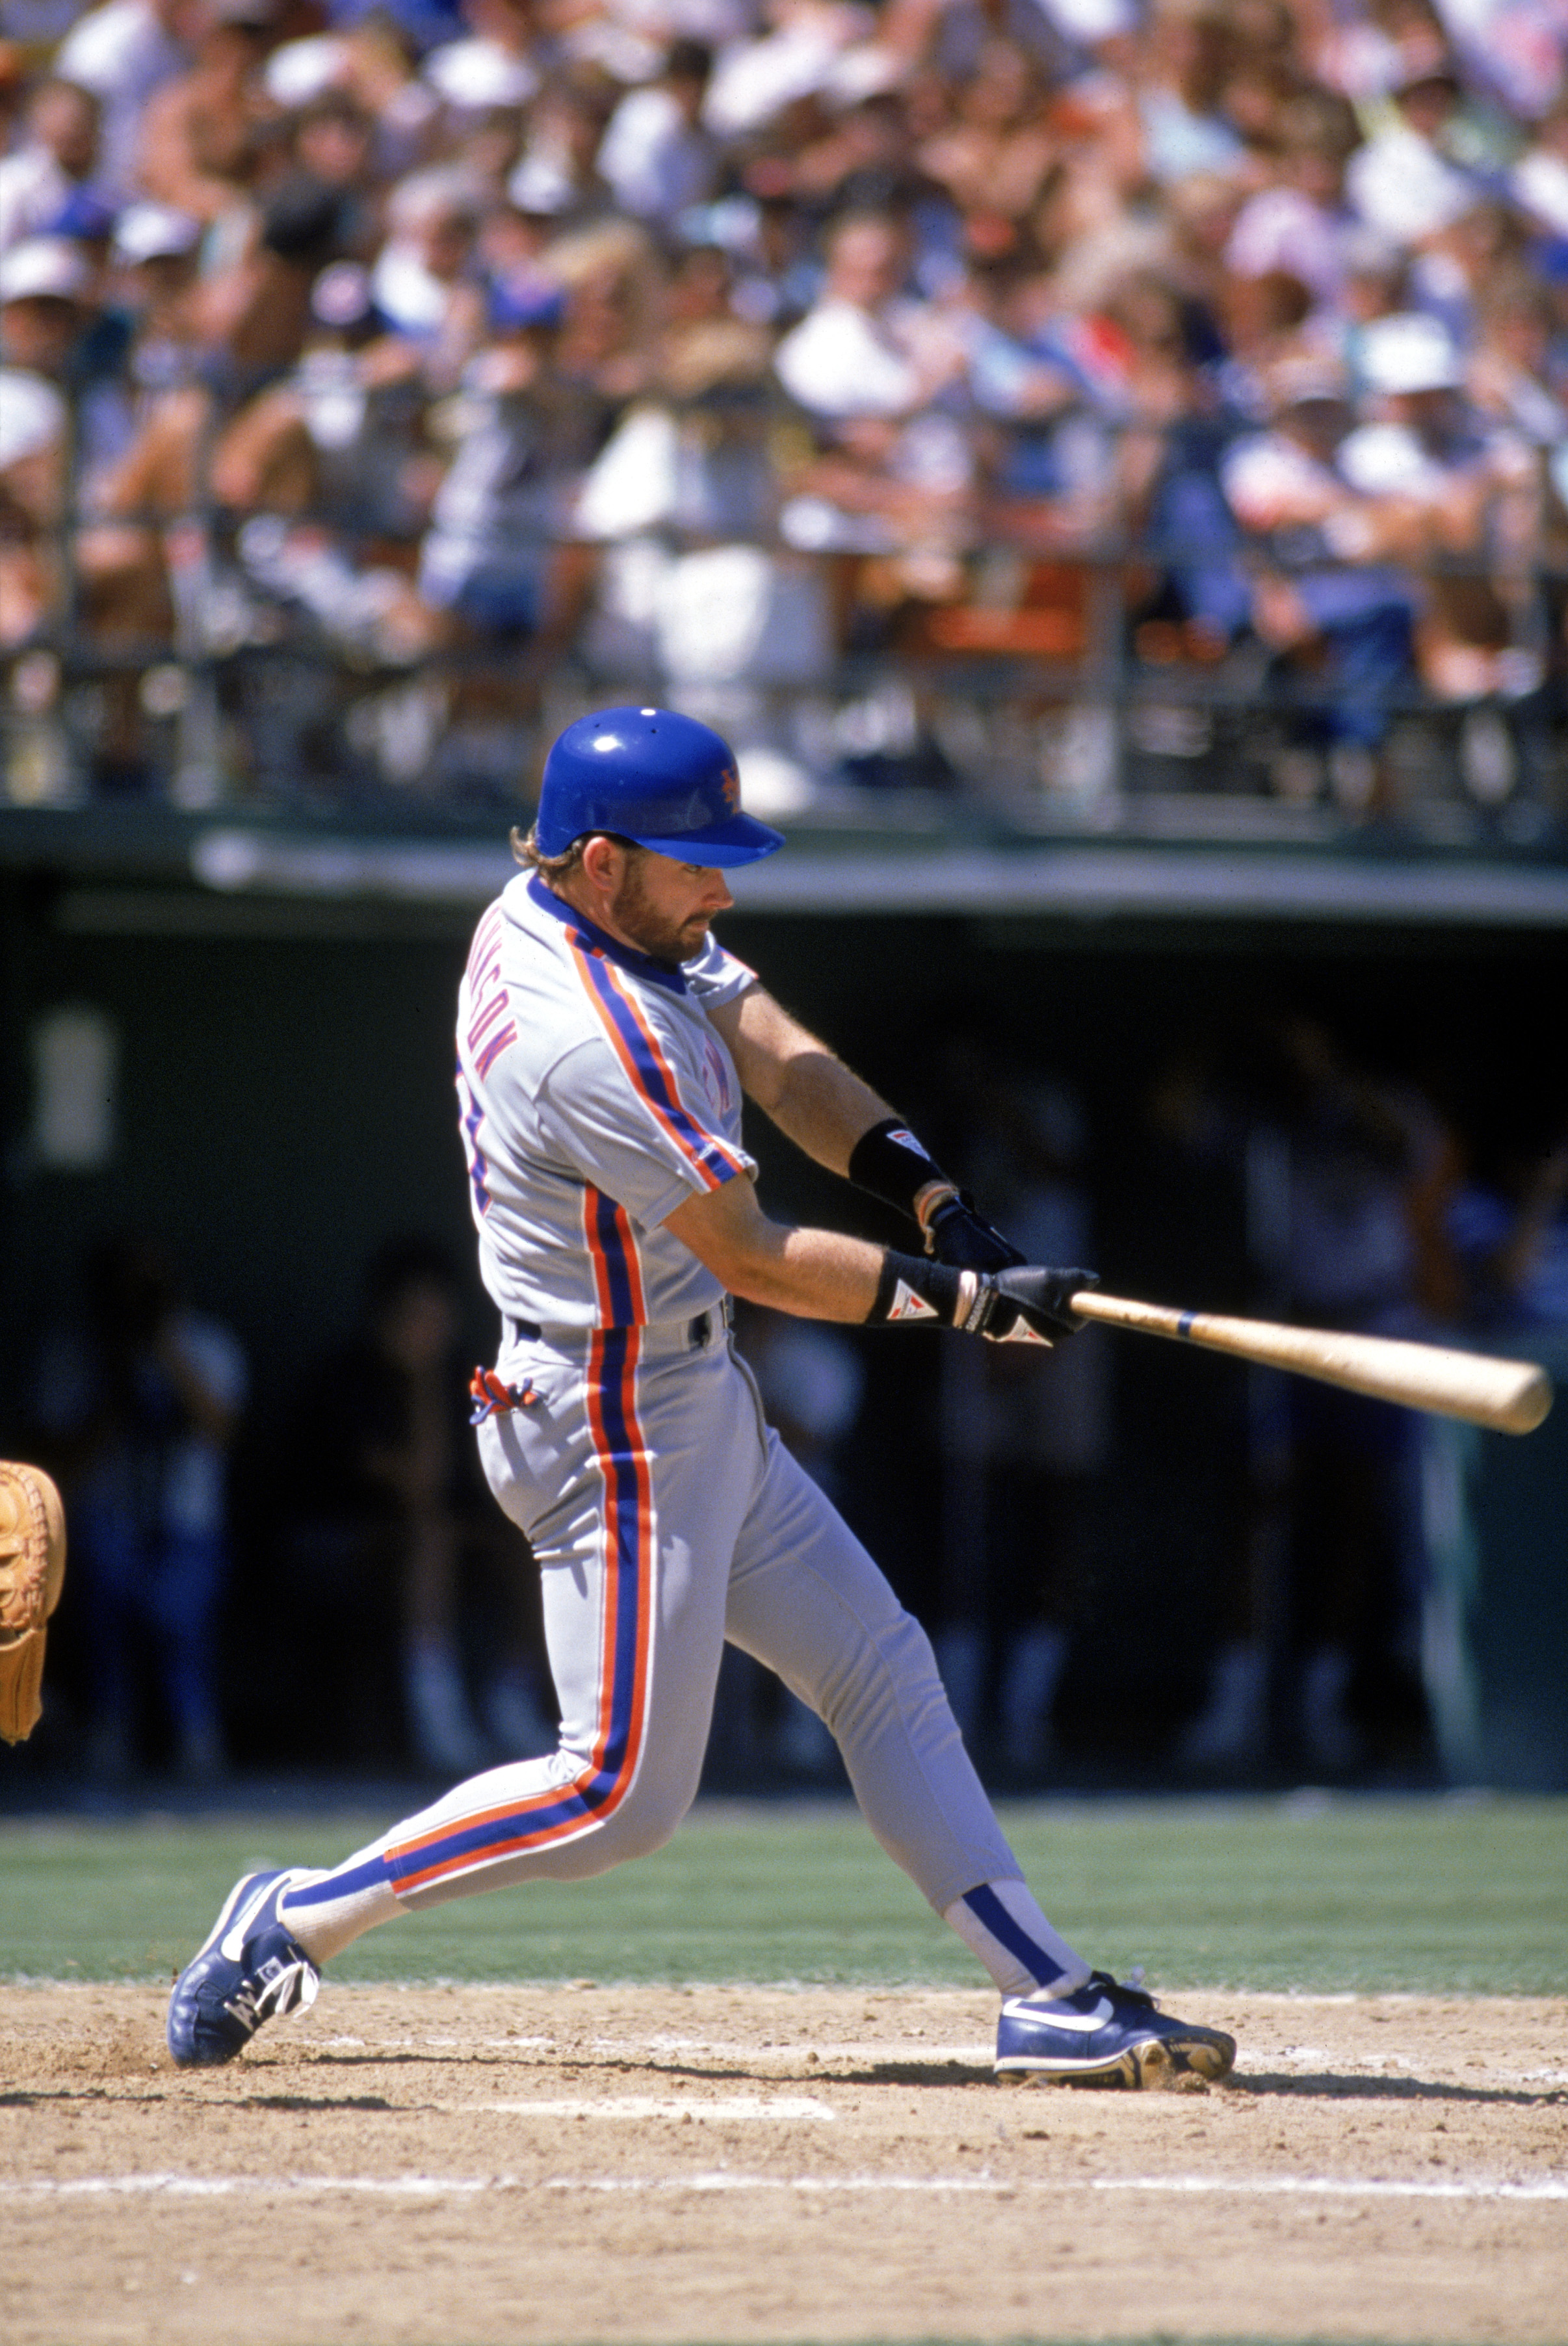 1989:  Howard Johnson of the New York Mets swings at the pitch during a game in the 1989 season. ( Photo by: Stephen Dunn/Getty Images)